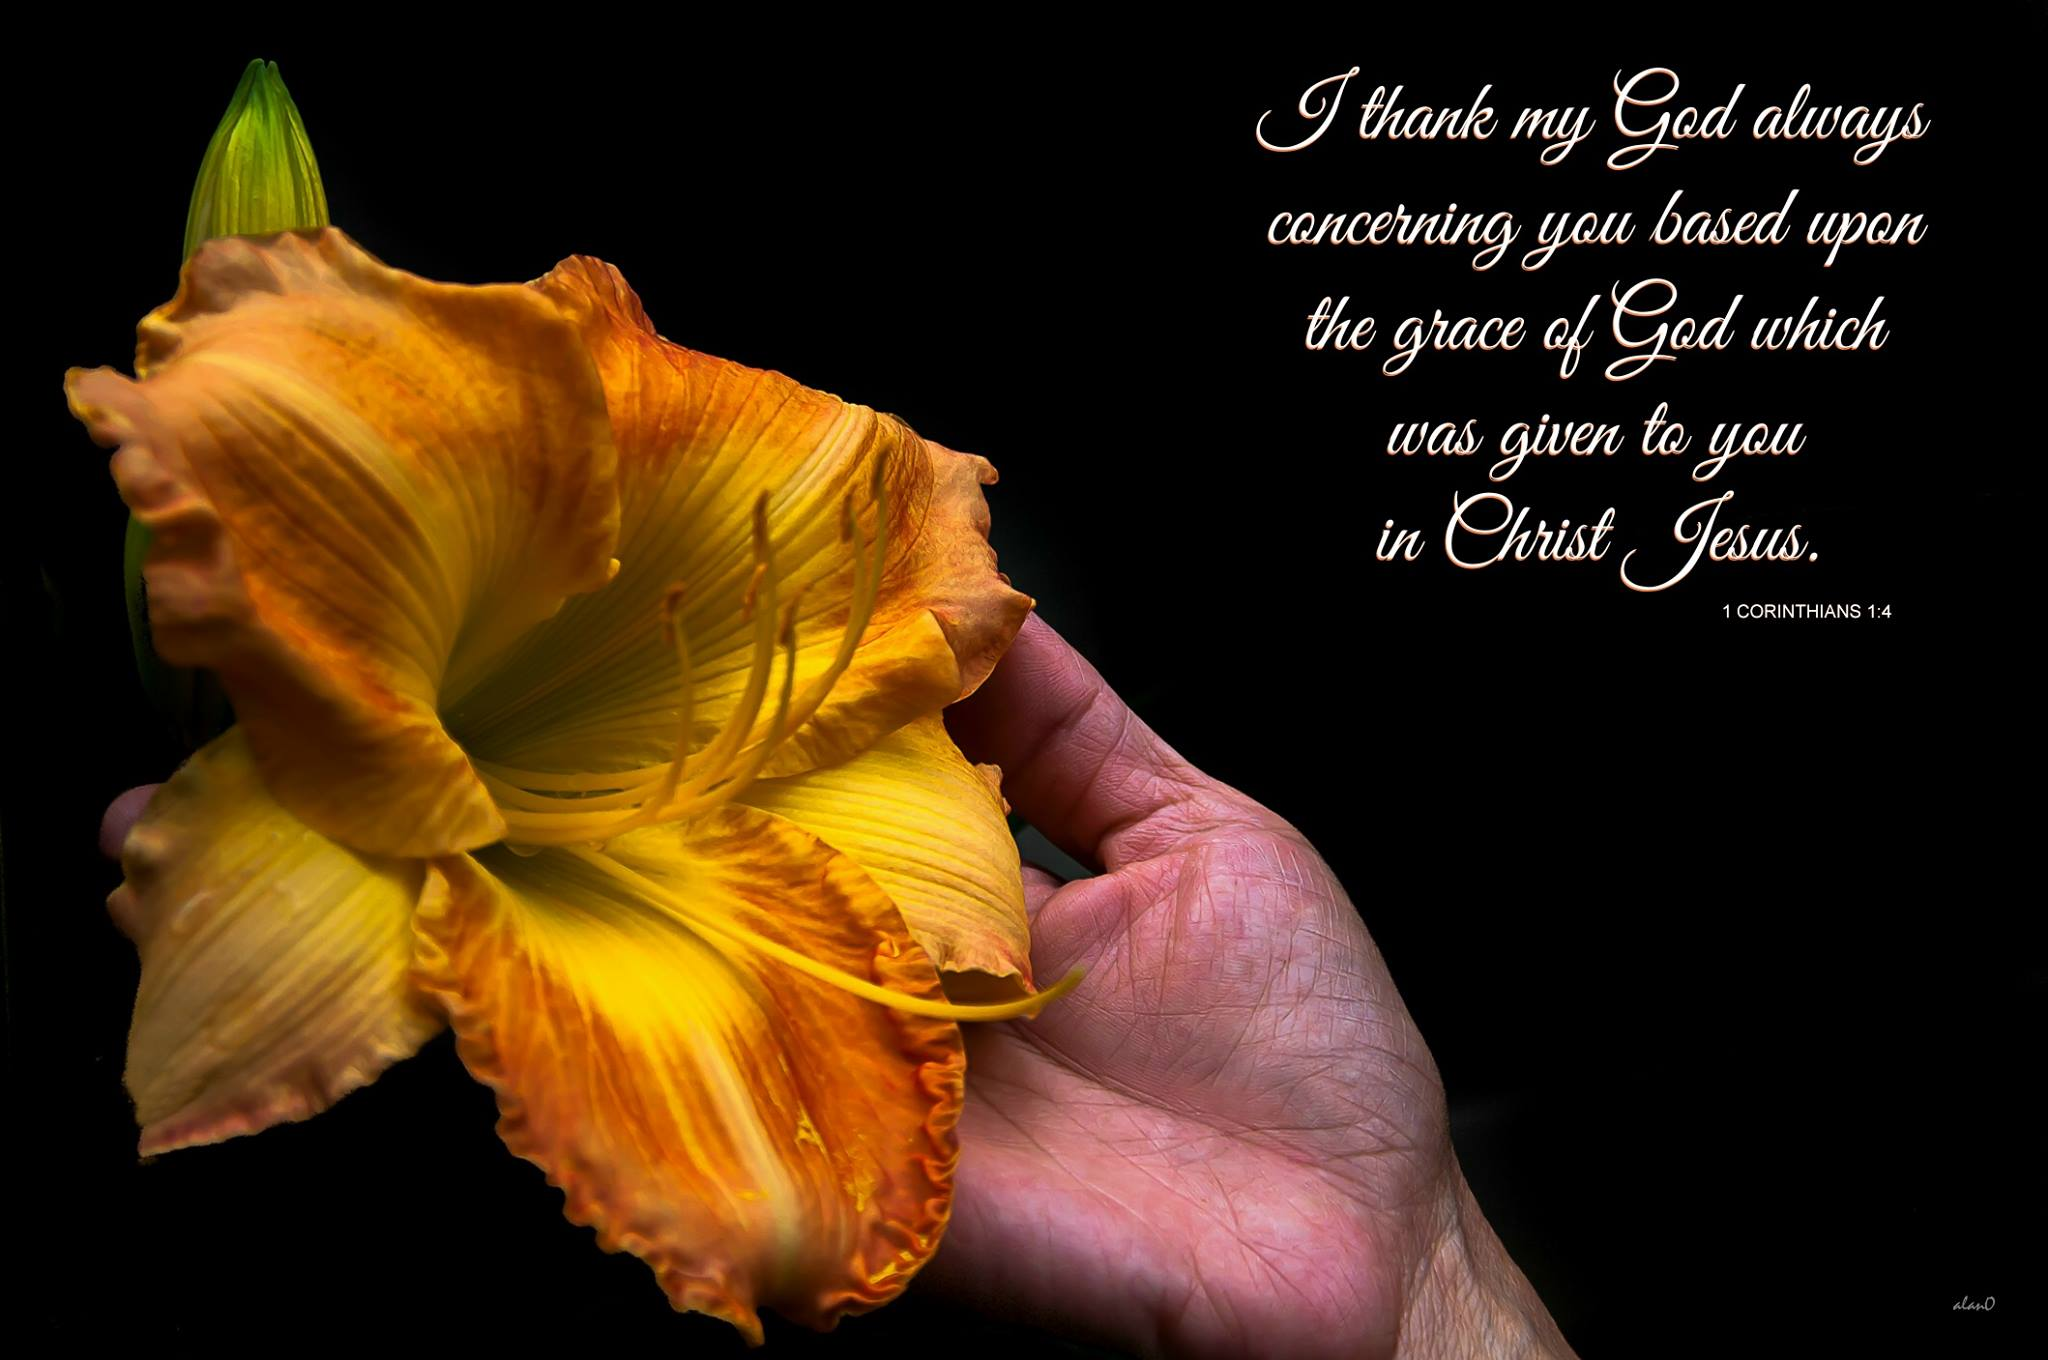 1 Cor. 1:4 I thank my God always concerning you based upon the grace of God which was given to you in Christ Jesus